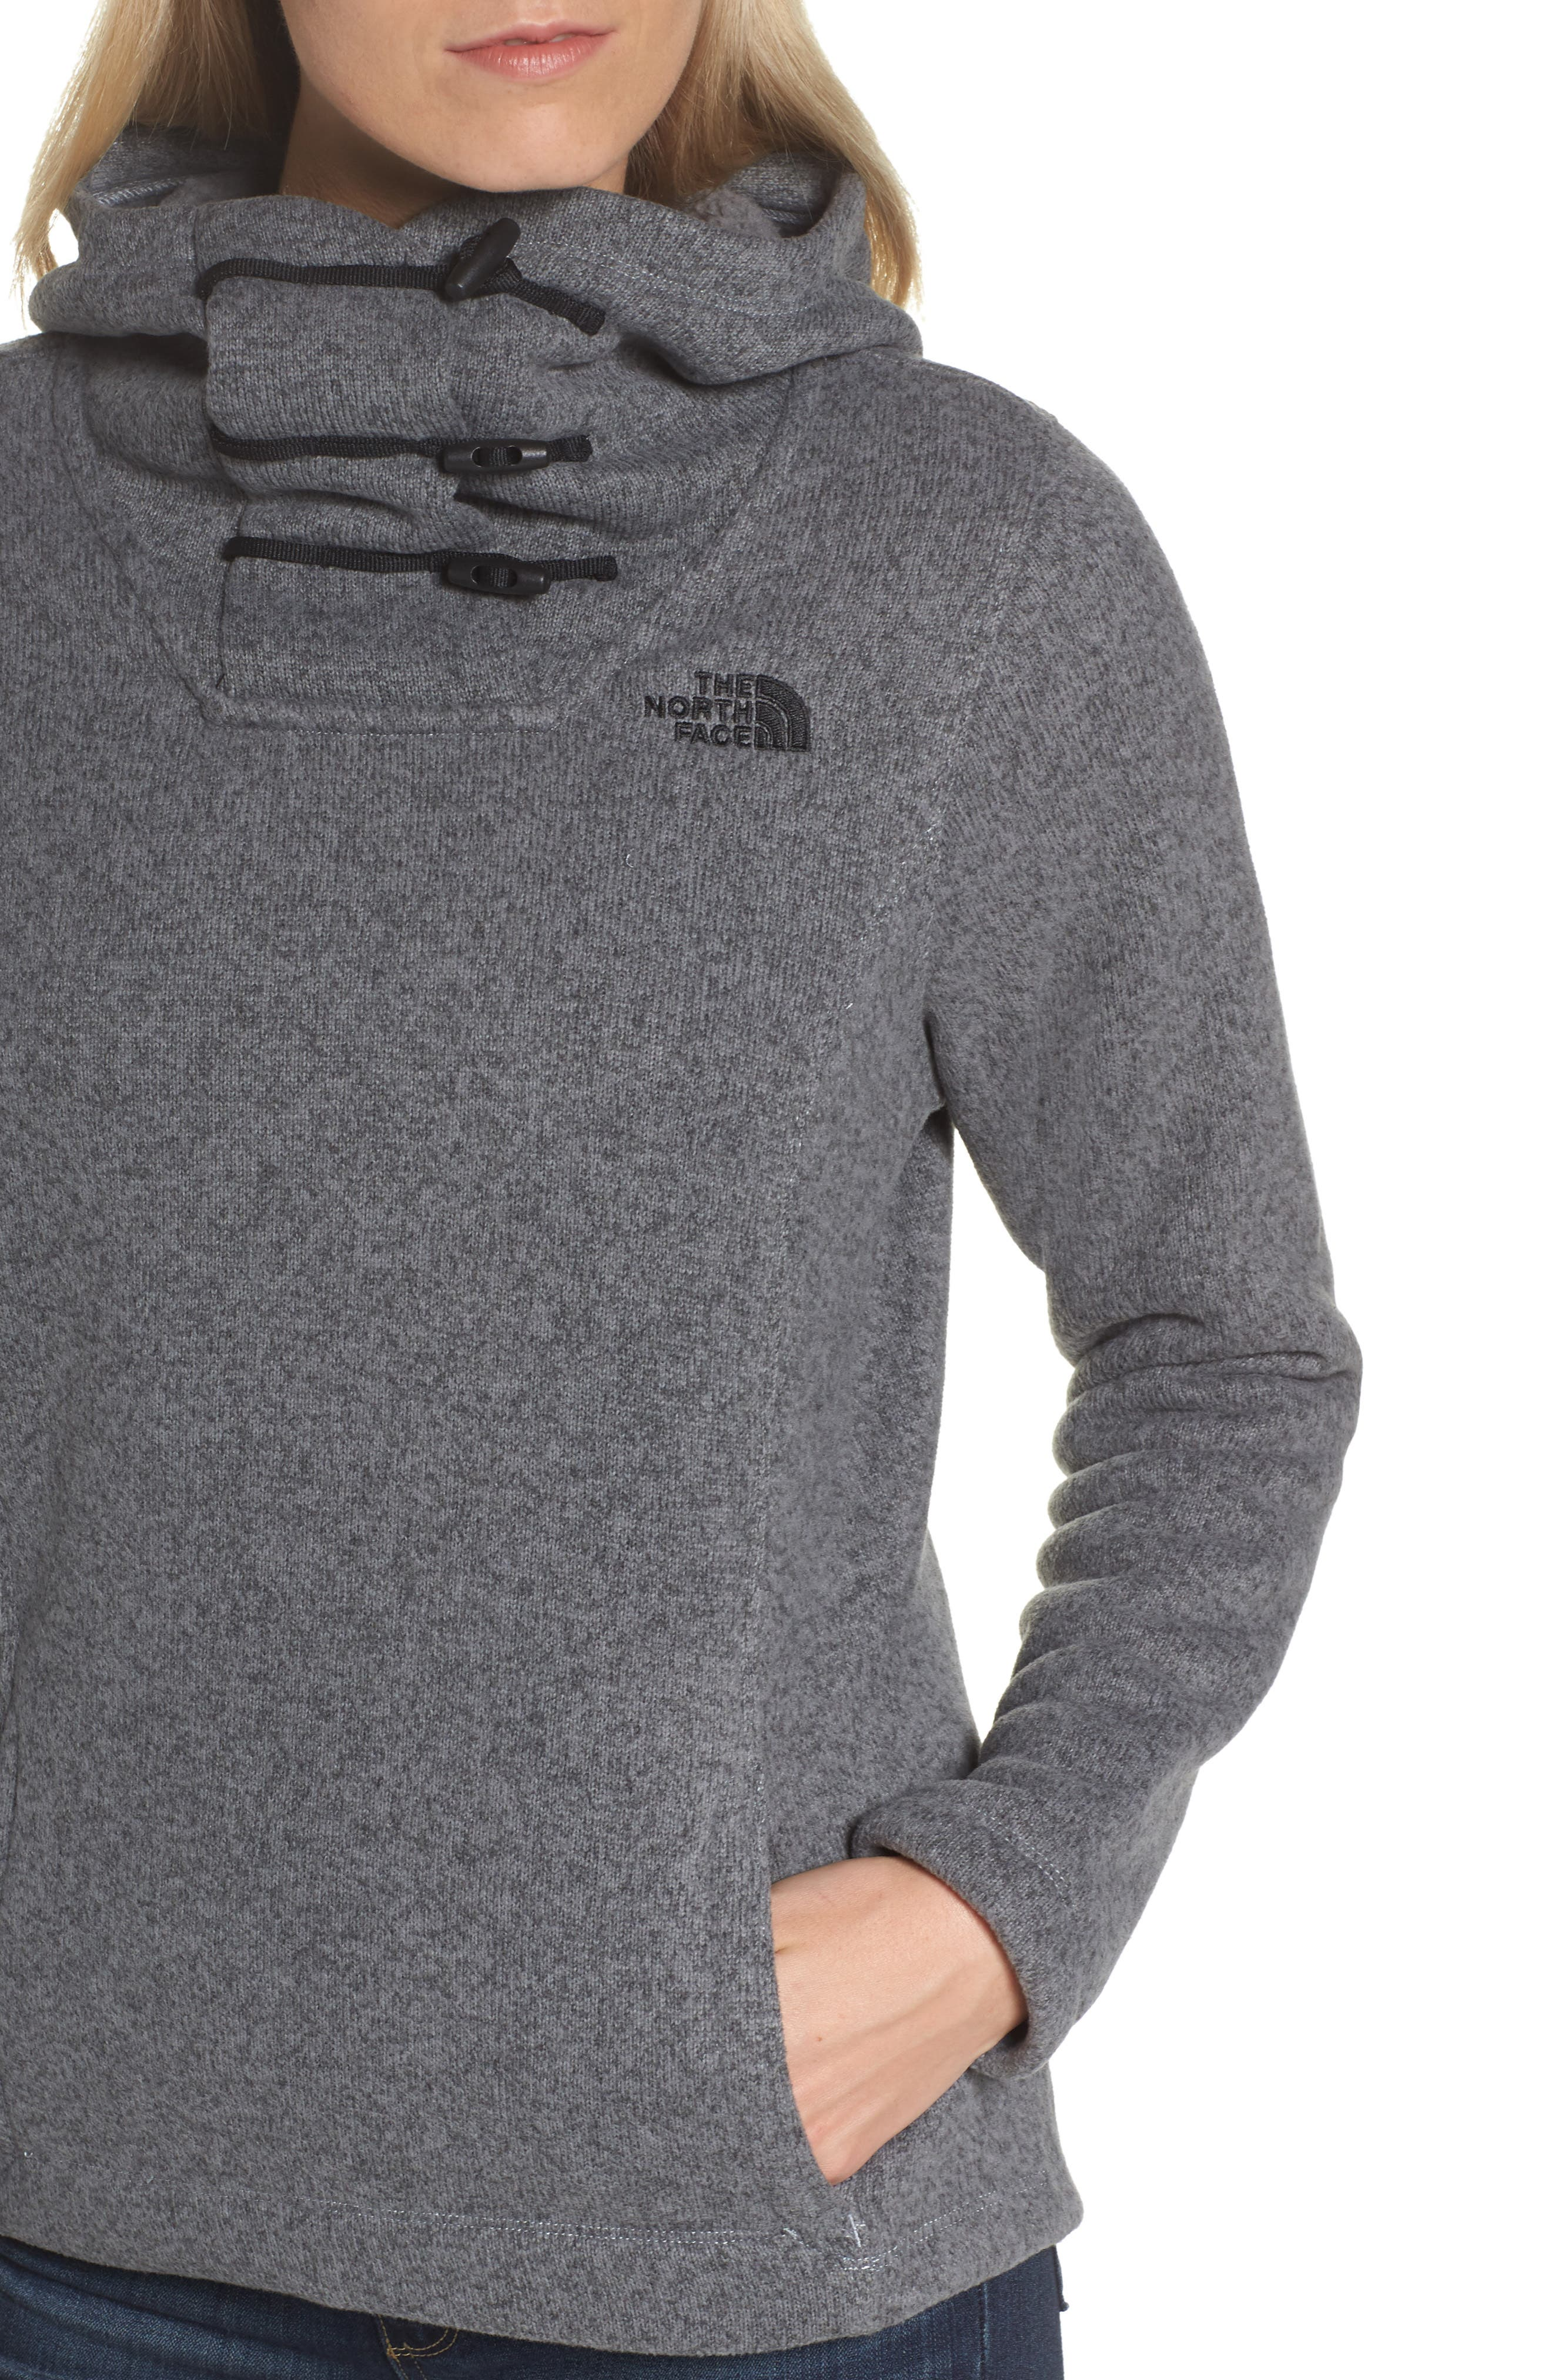 THE NORTH FACE,                             Crescent Hoodie,                             Alternate thumbnail 5, color,                             030